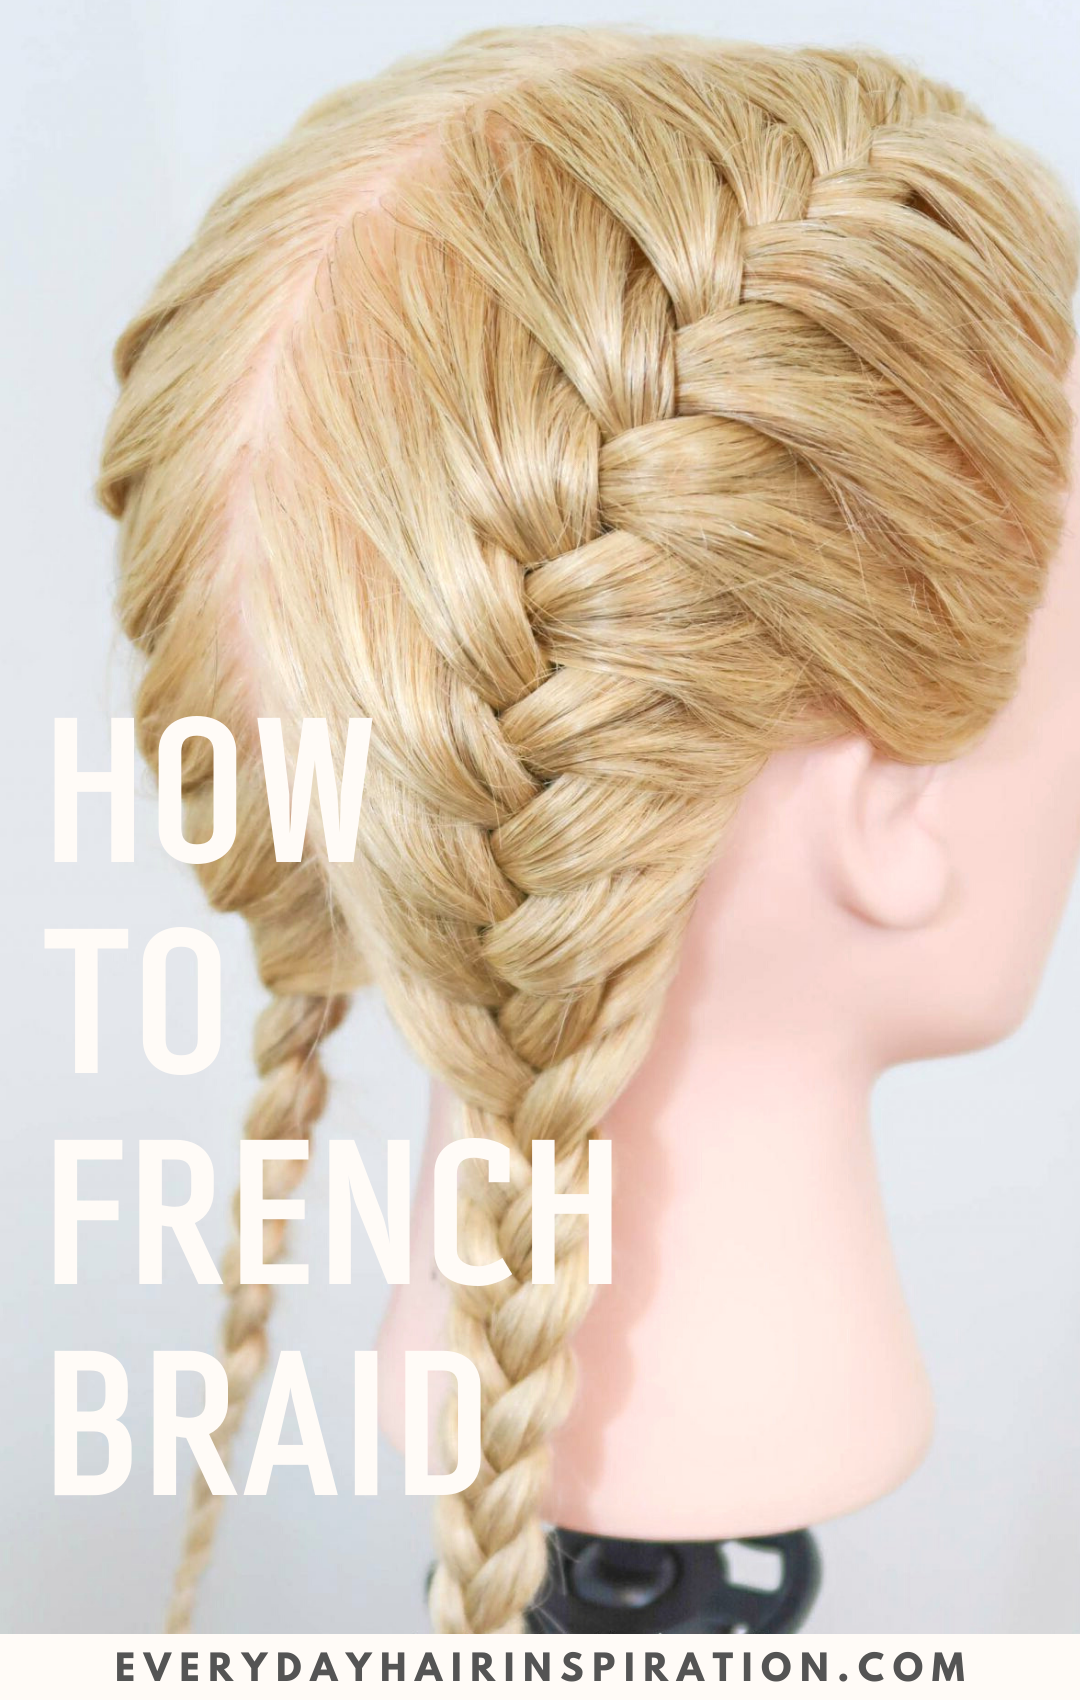 french braid for beginners